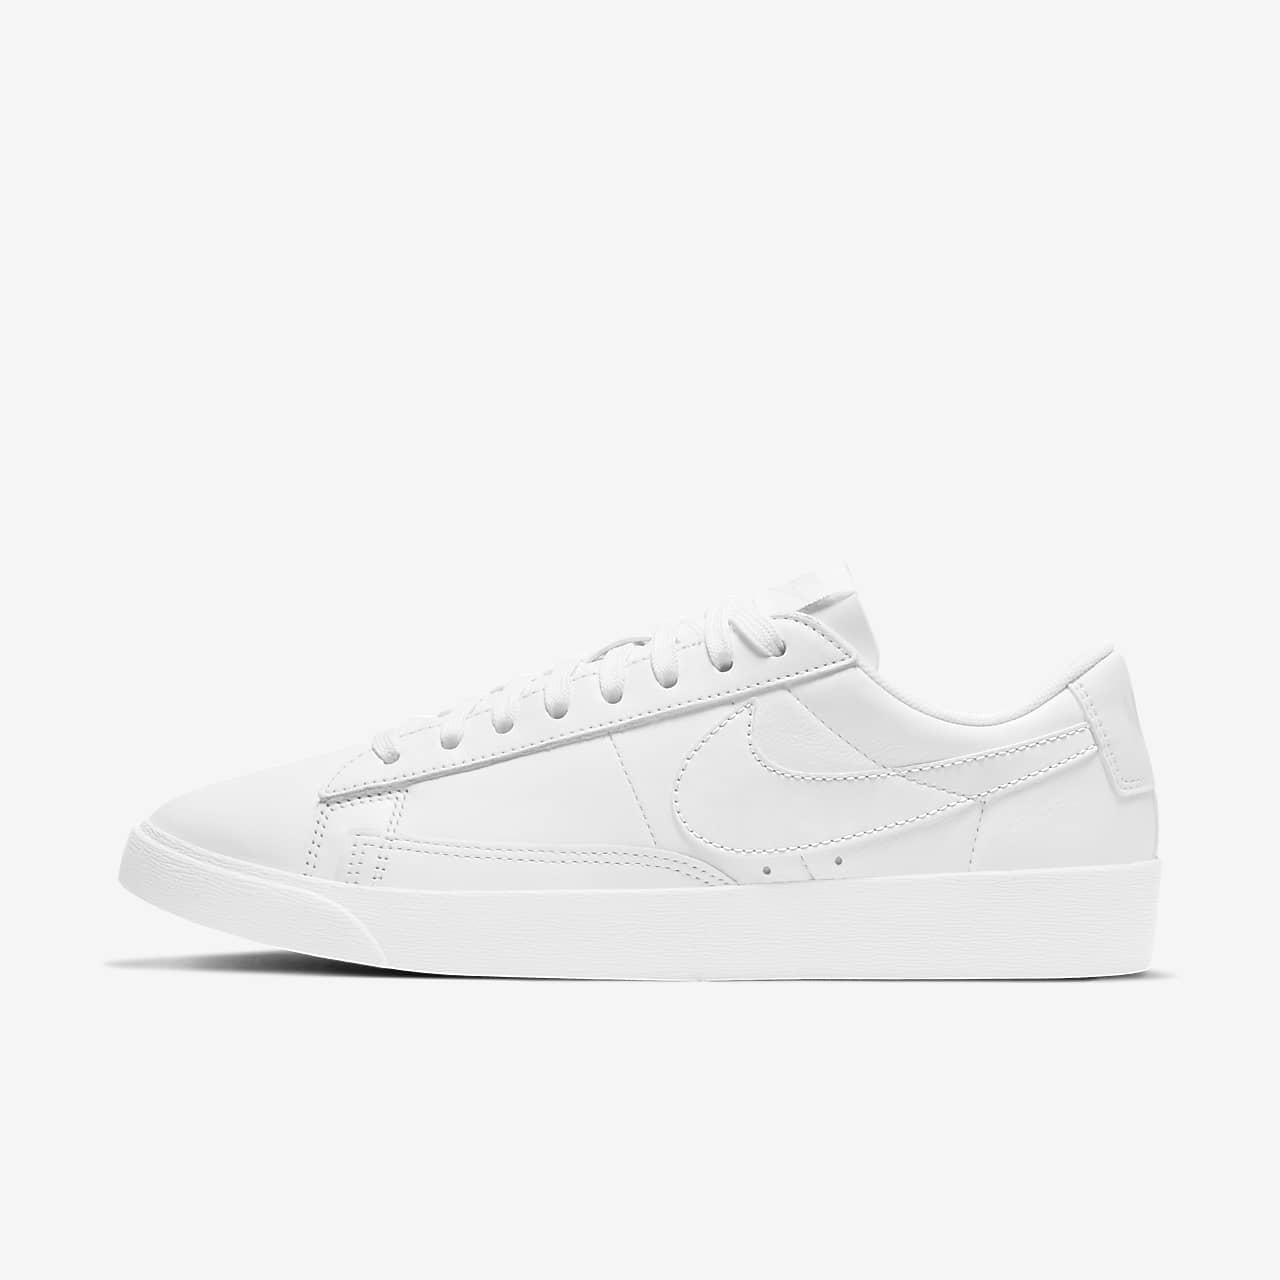 new concept e6513 d0605 Nike Blazer Low LE